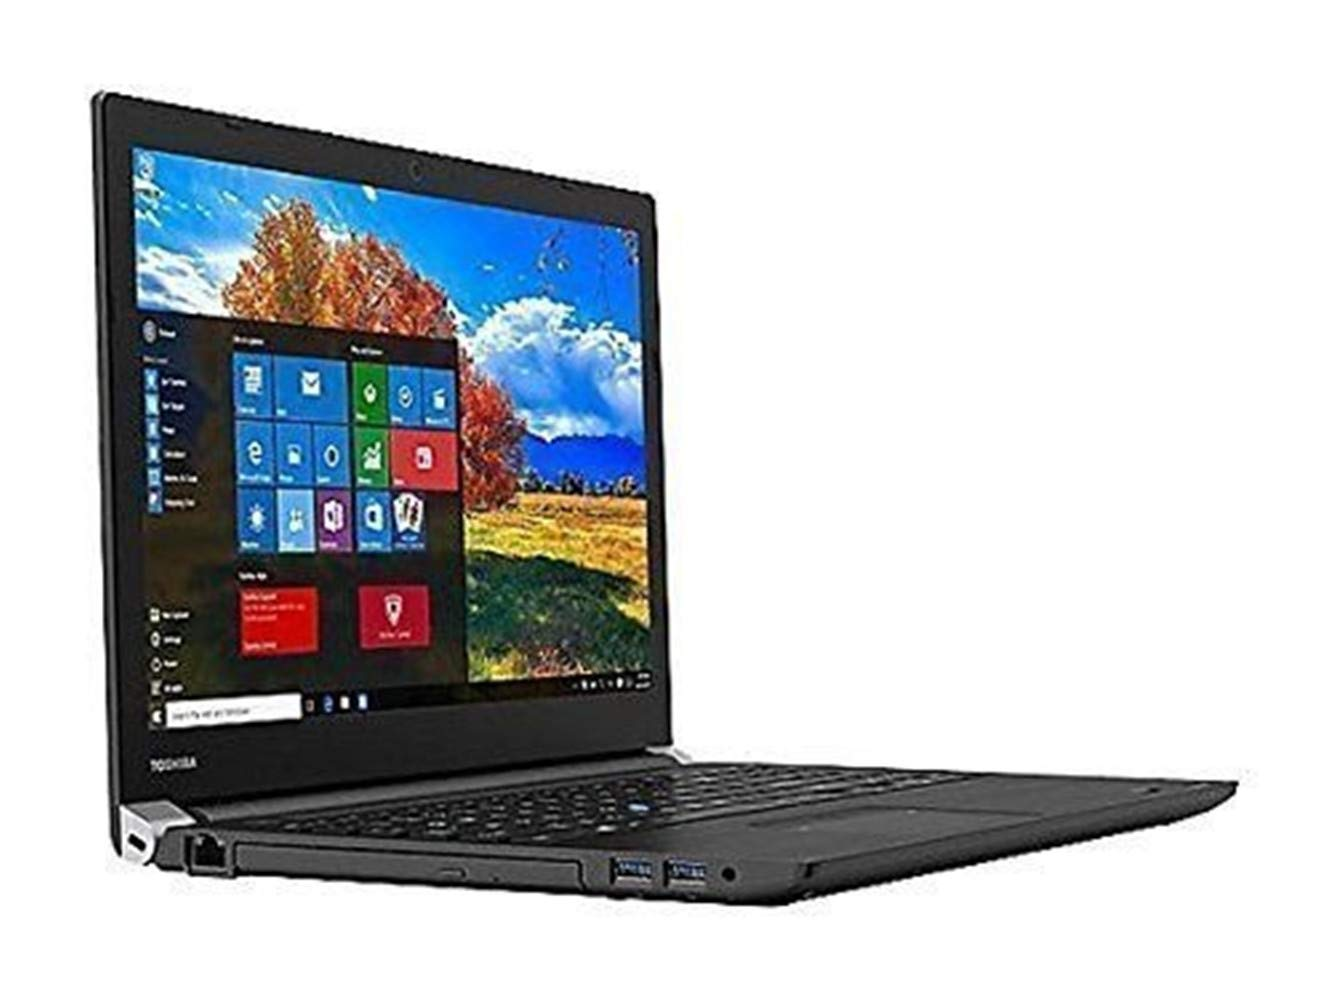 Best Laptop for Work And Play